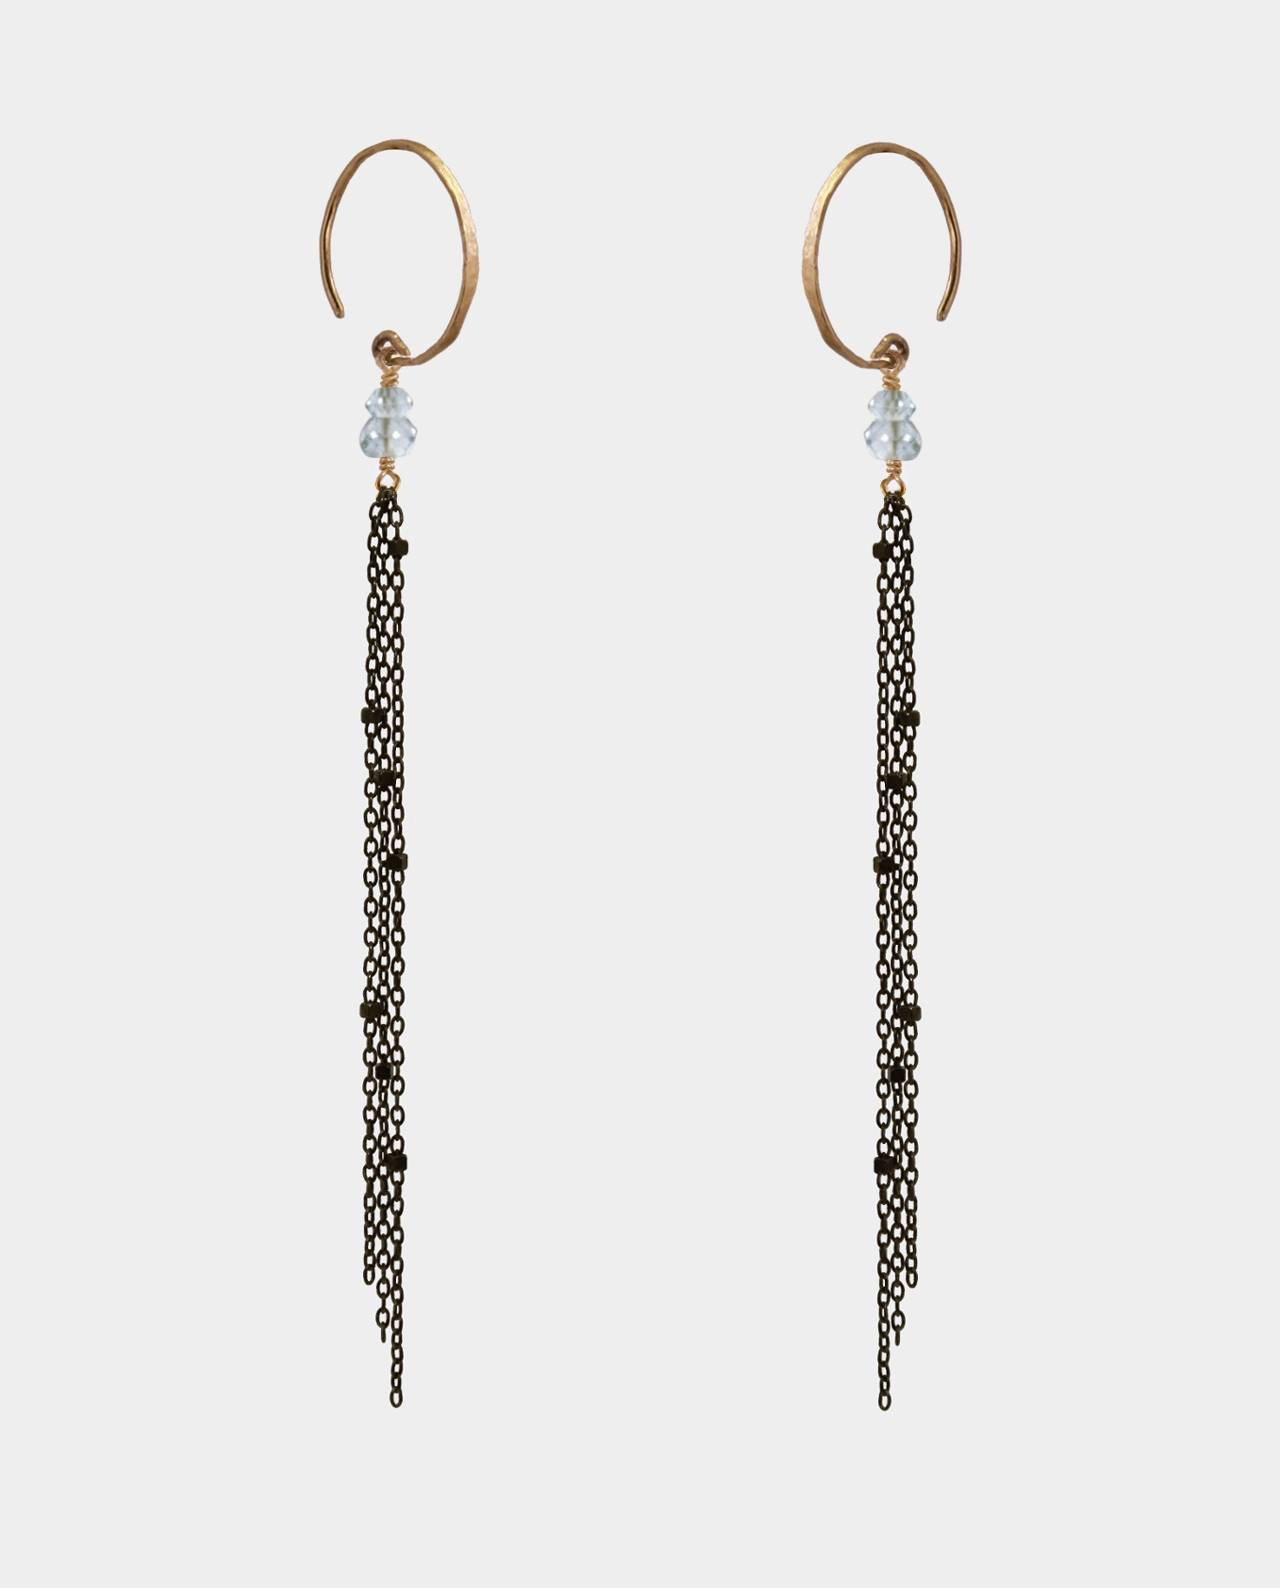 Earrings with circular earhook plated in 14 carat gold and apatite gemstones with long oxidized sterling silver chains